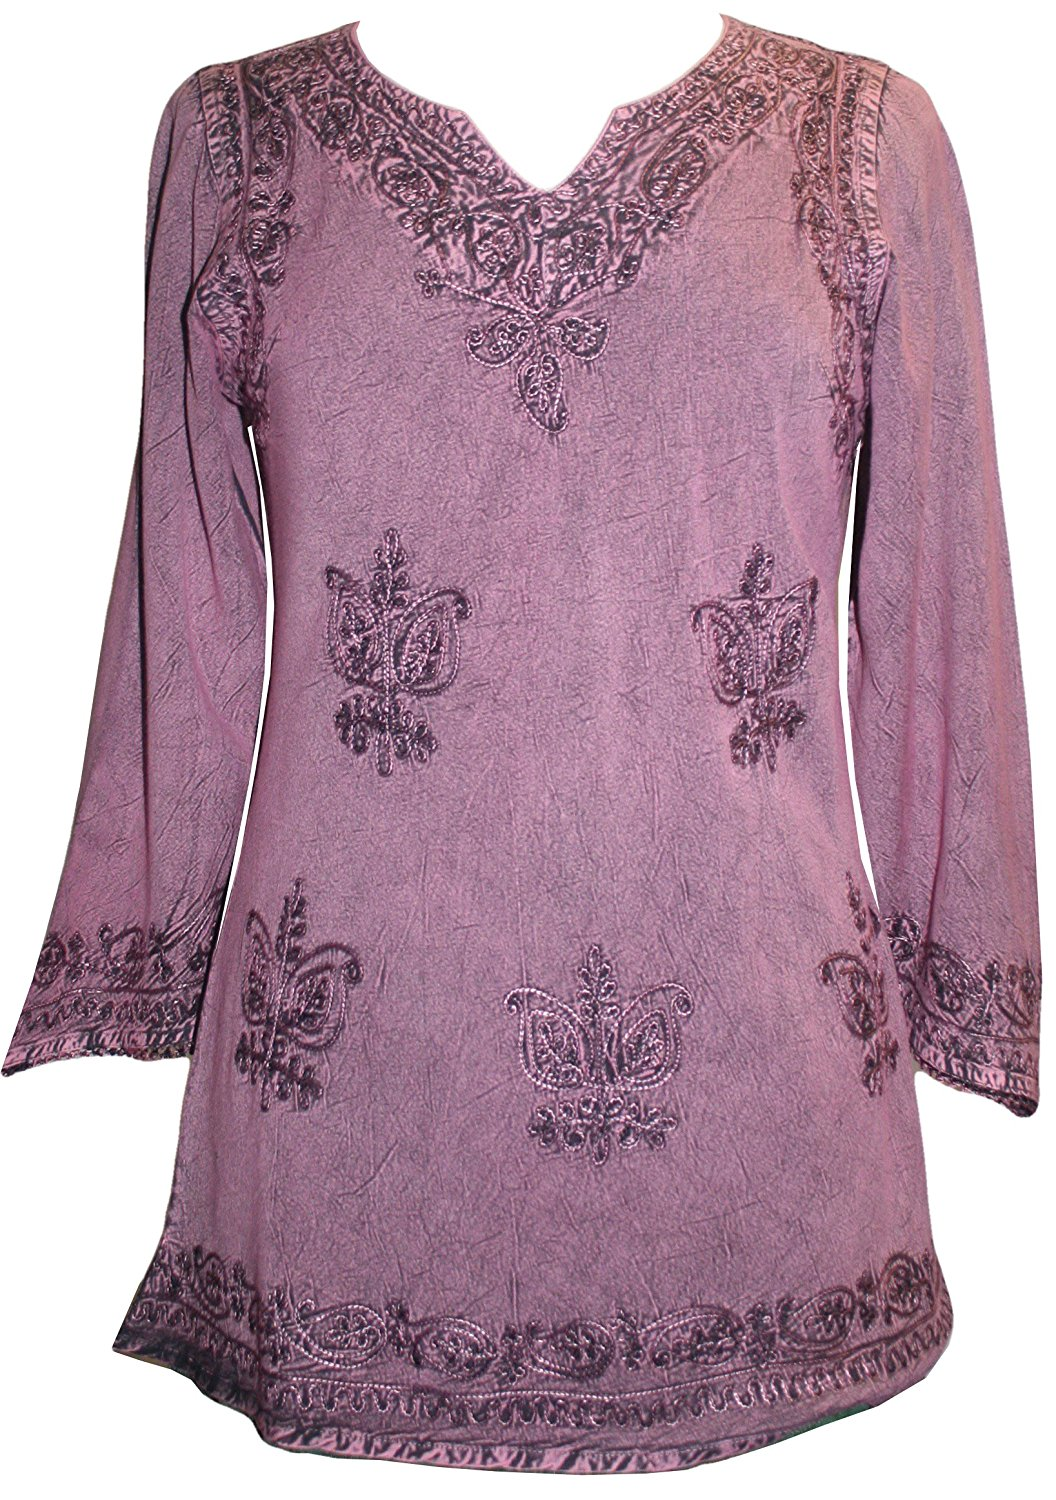 127 B Diamond Neck Embroidered Rayon Renaissance Tunic Blouse - Agan Traders, Plum